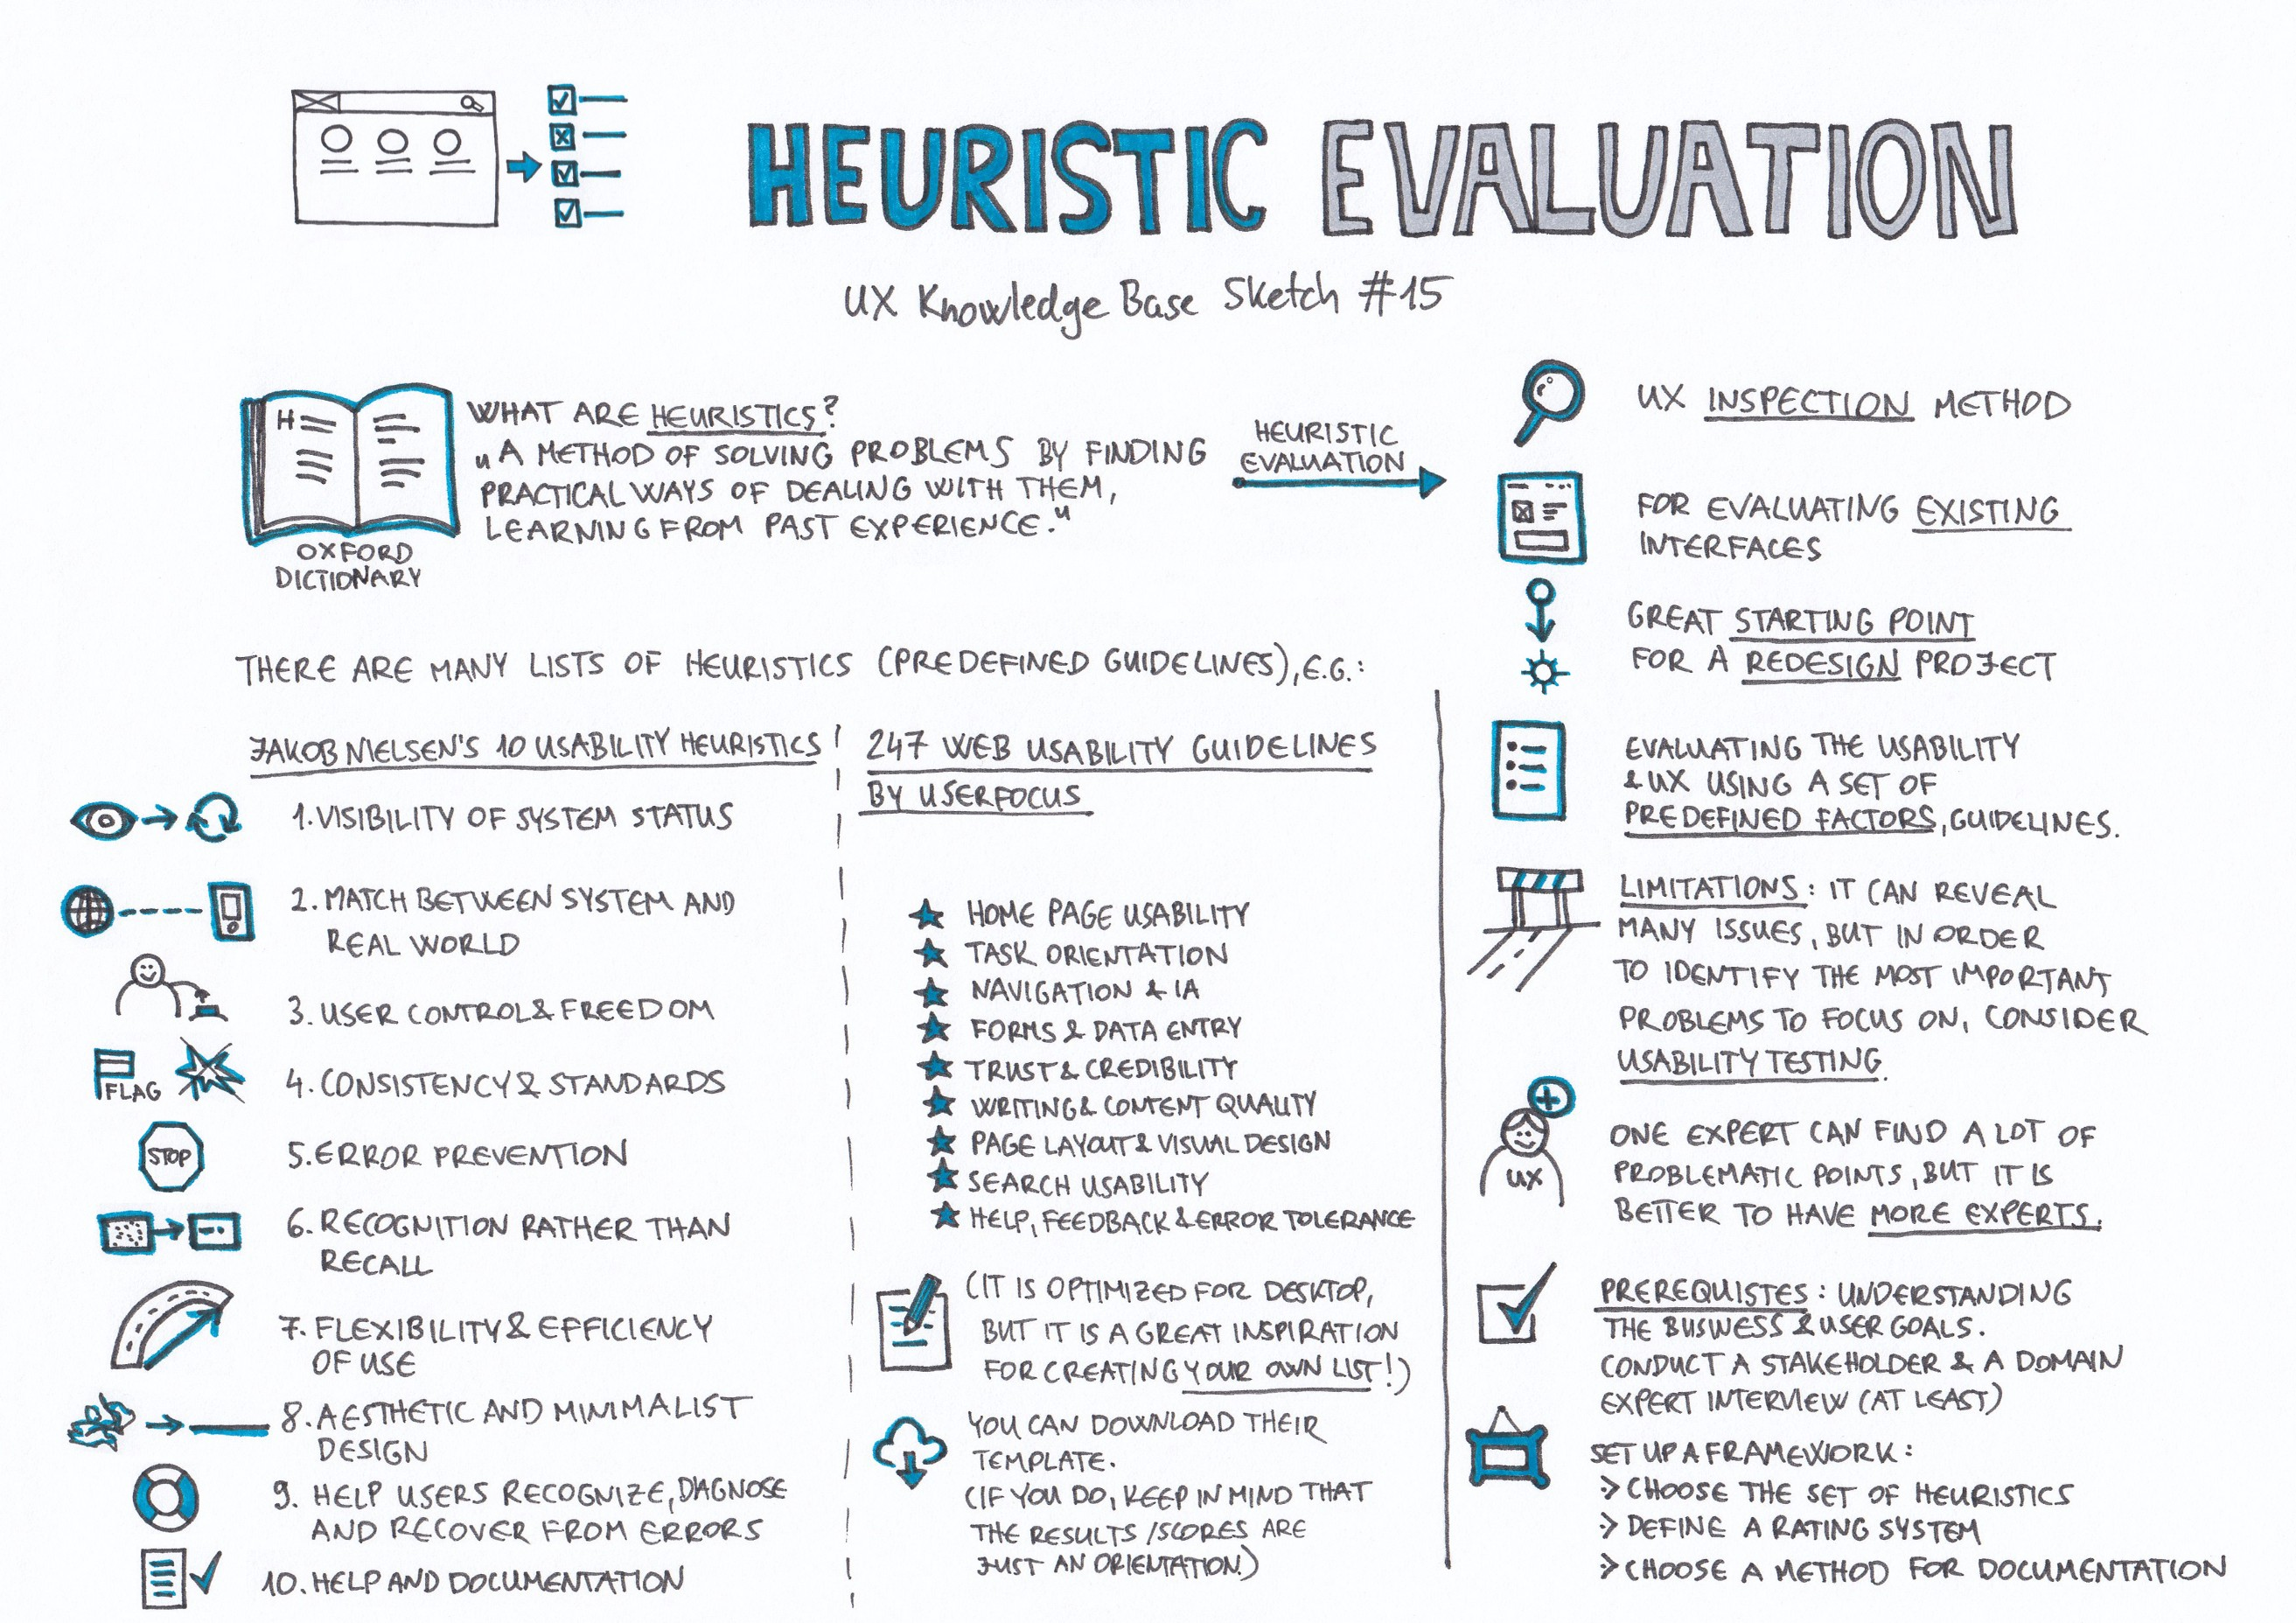 Heuristic Evaluation - UX Knowledge Base Sketch